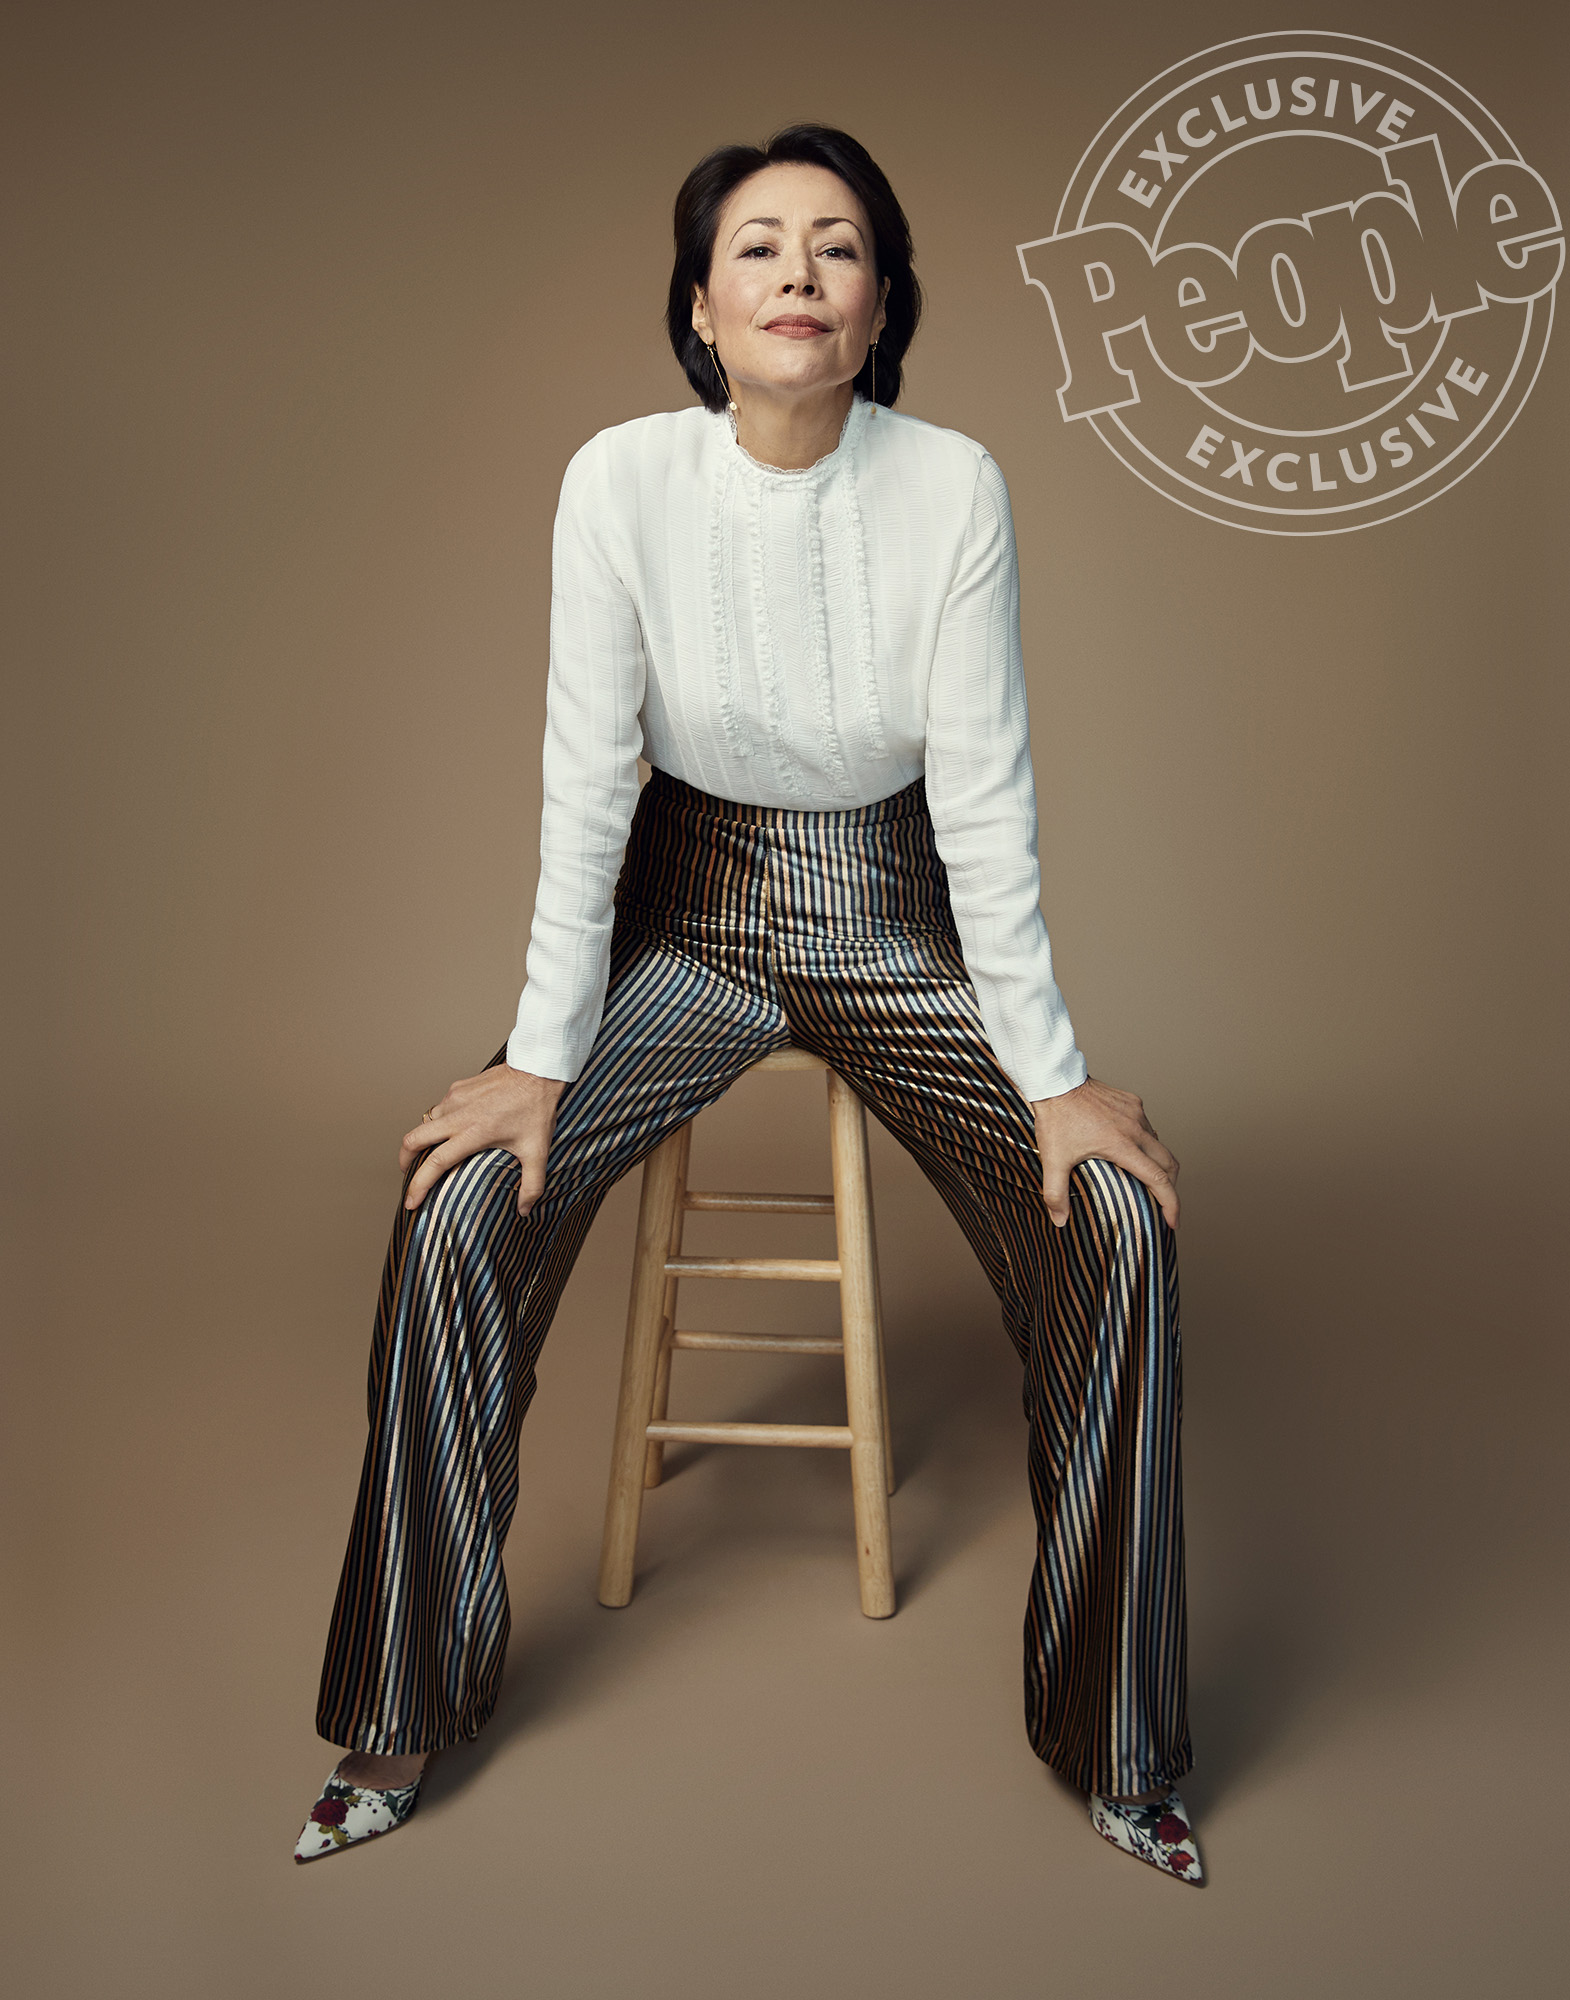 F:PHOTOReady RoomActionsInsert Request48440#VIctoria WIll20171129_AnnCurry_Shot003_0737.jpg